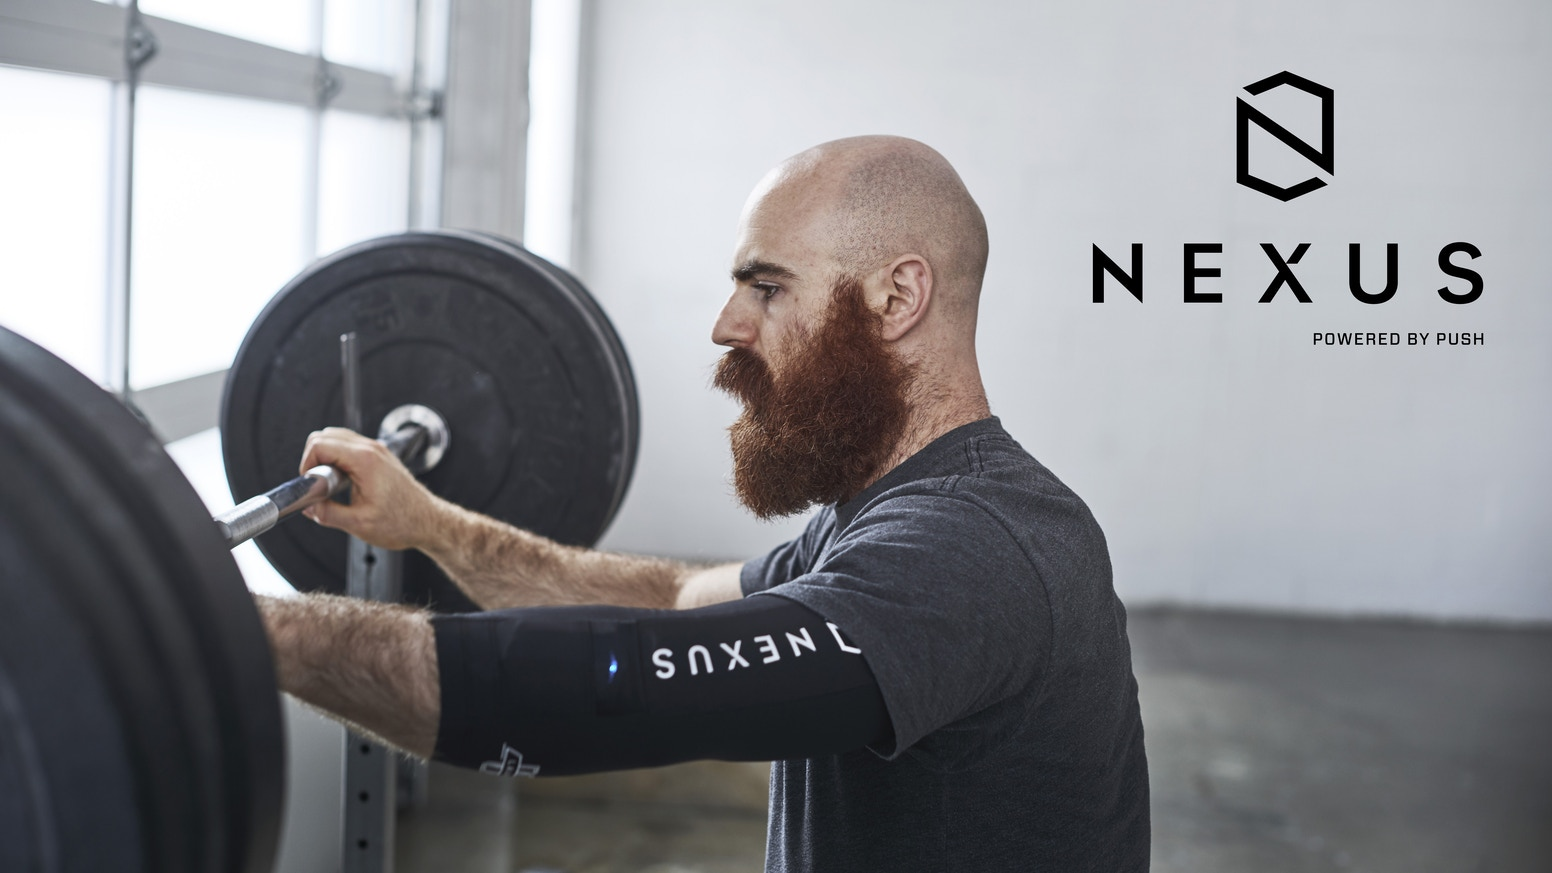 To buy your NEXUS visit: www.trainwithnexus.com. Bringing to CrossFit what the worlds of running and cycling have had a long time - a way to truly track and share performance.